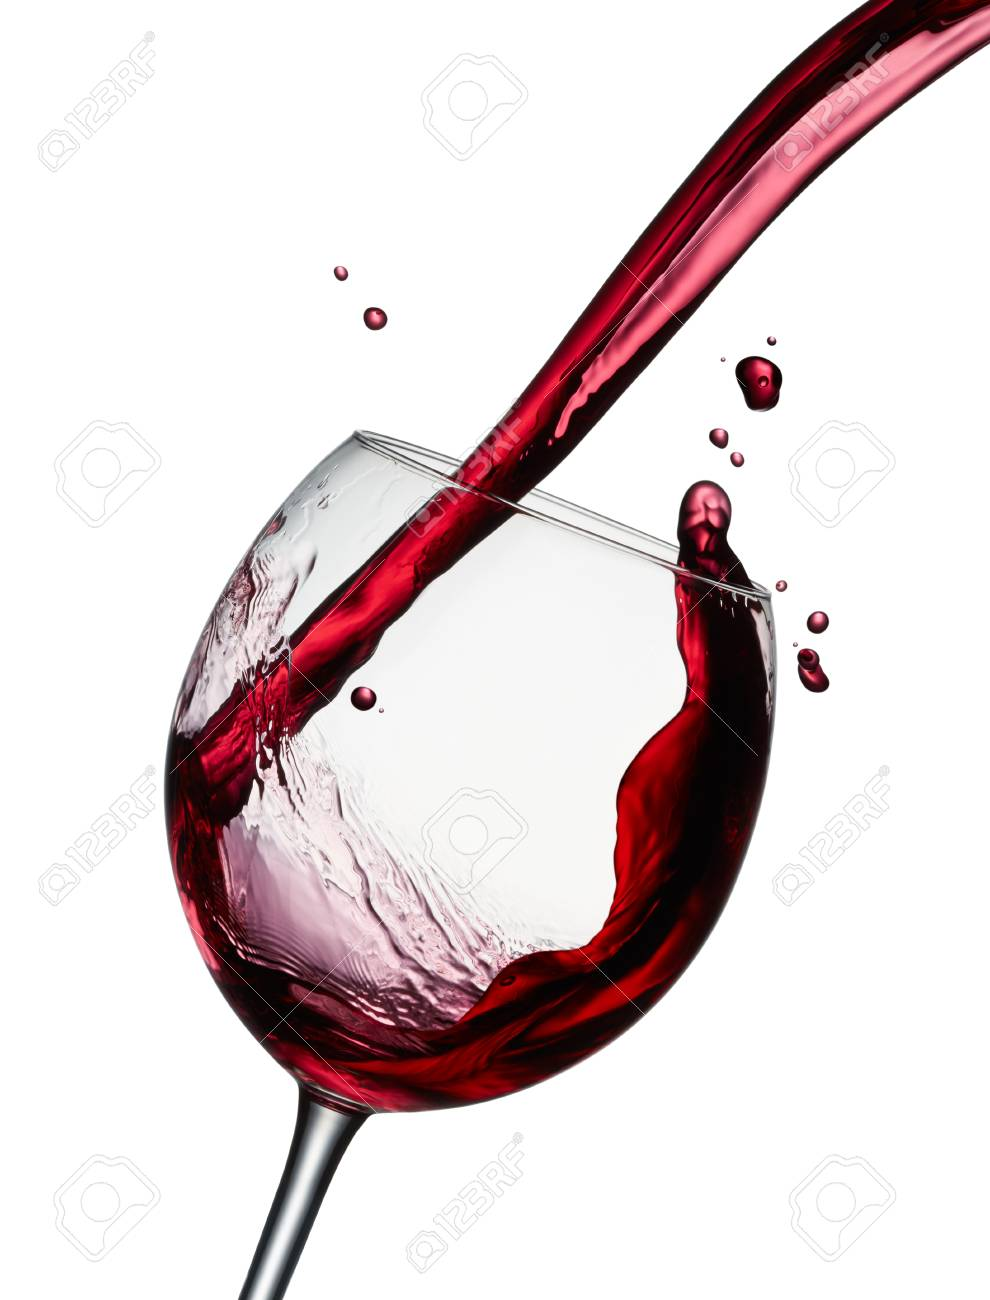 pouring a glass of red wine isolated on white - 66020151